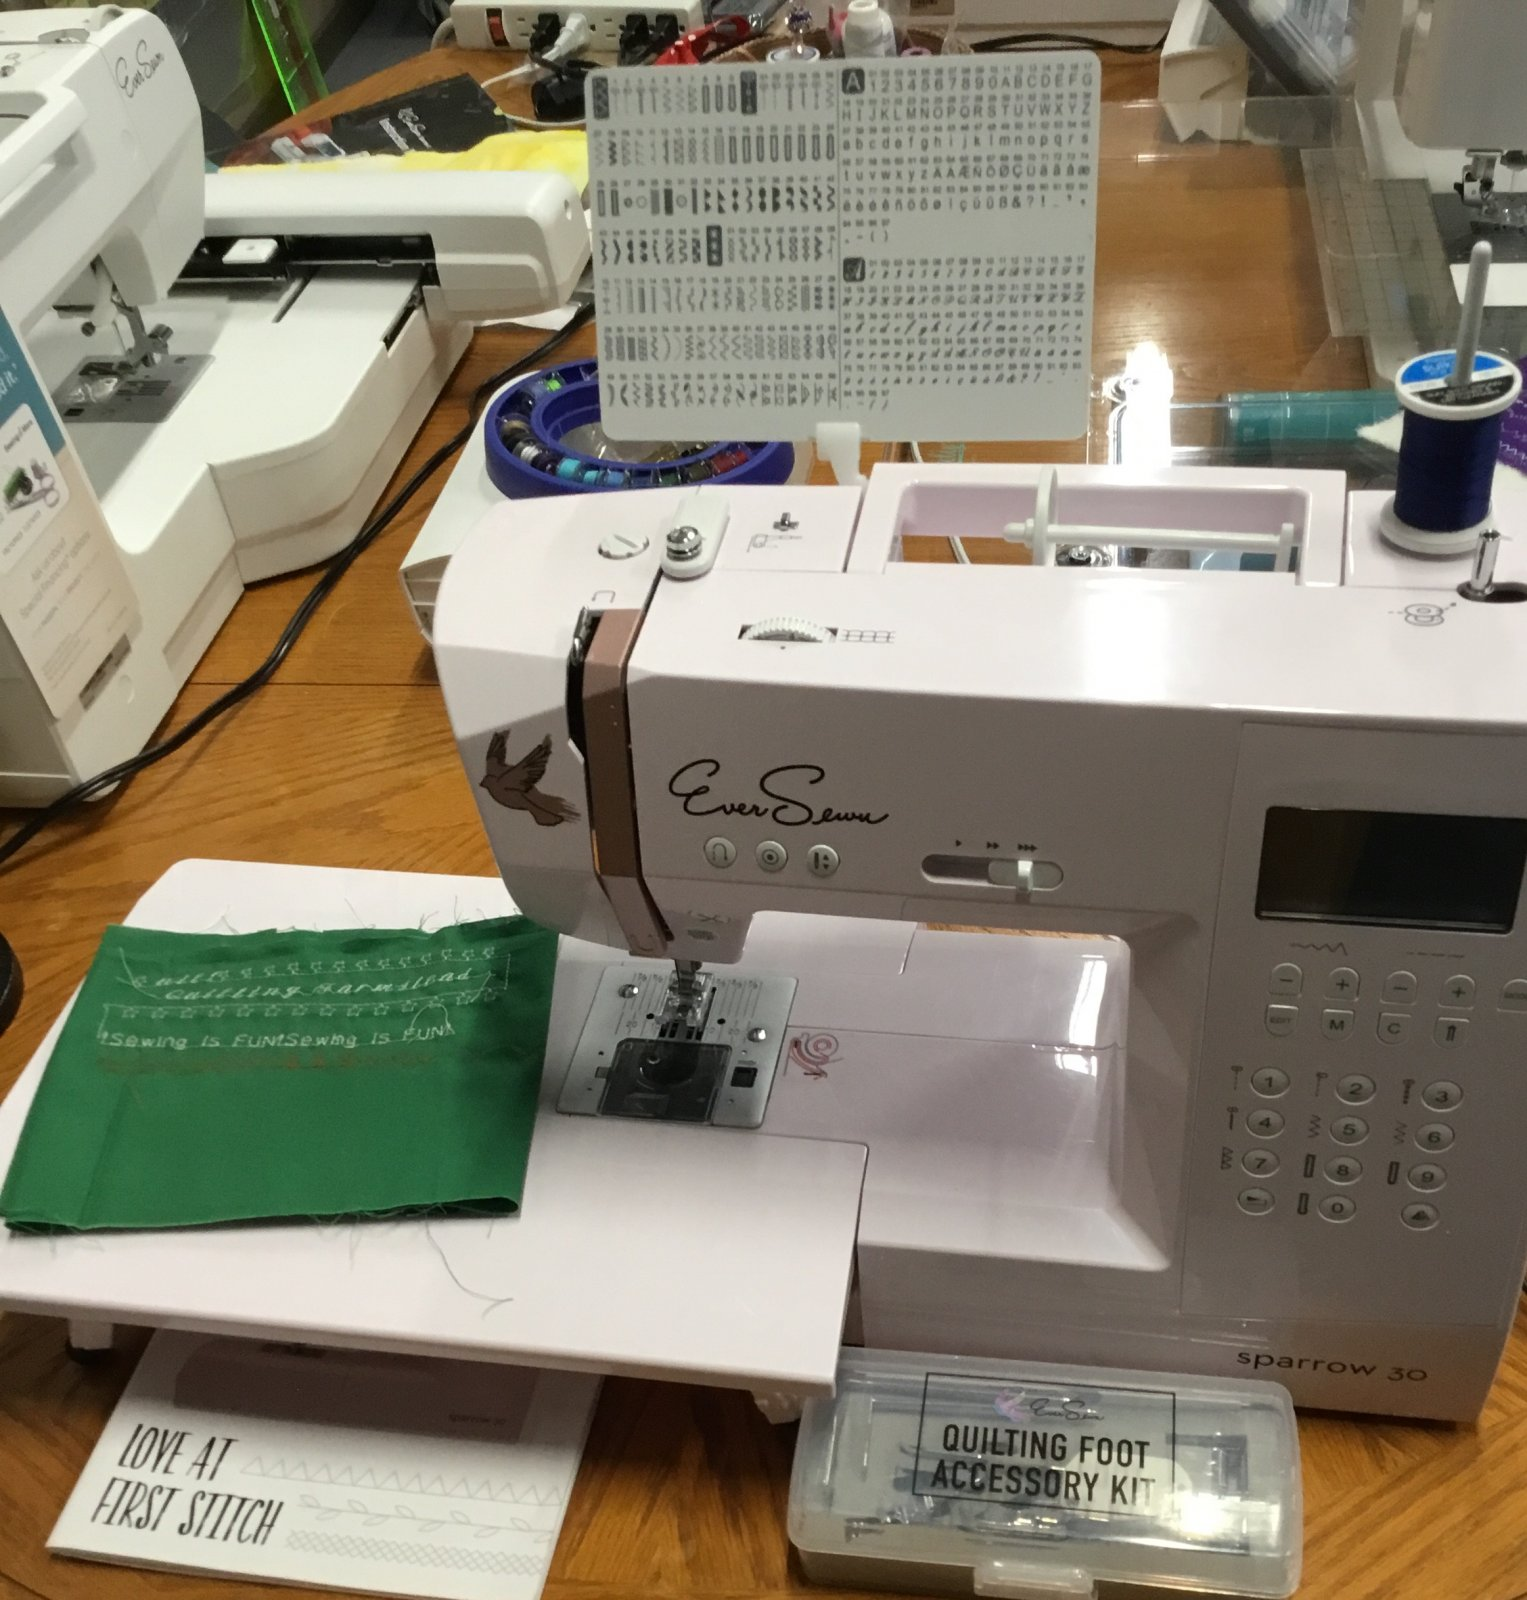 Sparrow 30 sewing machine